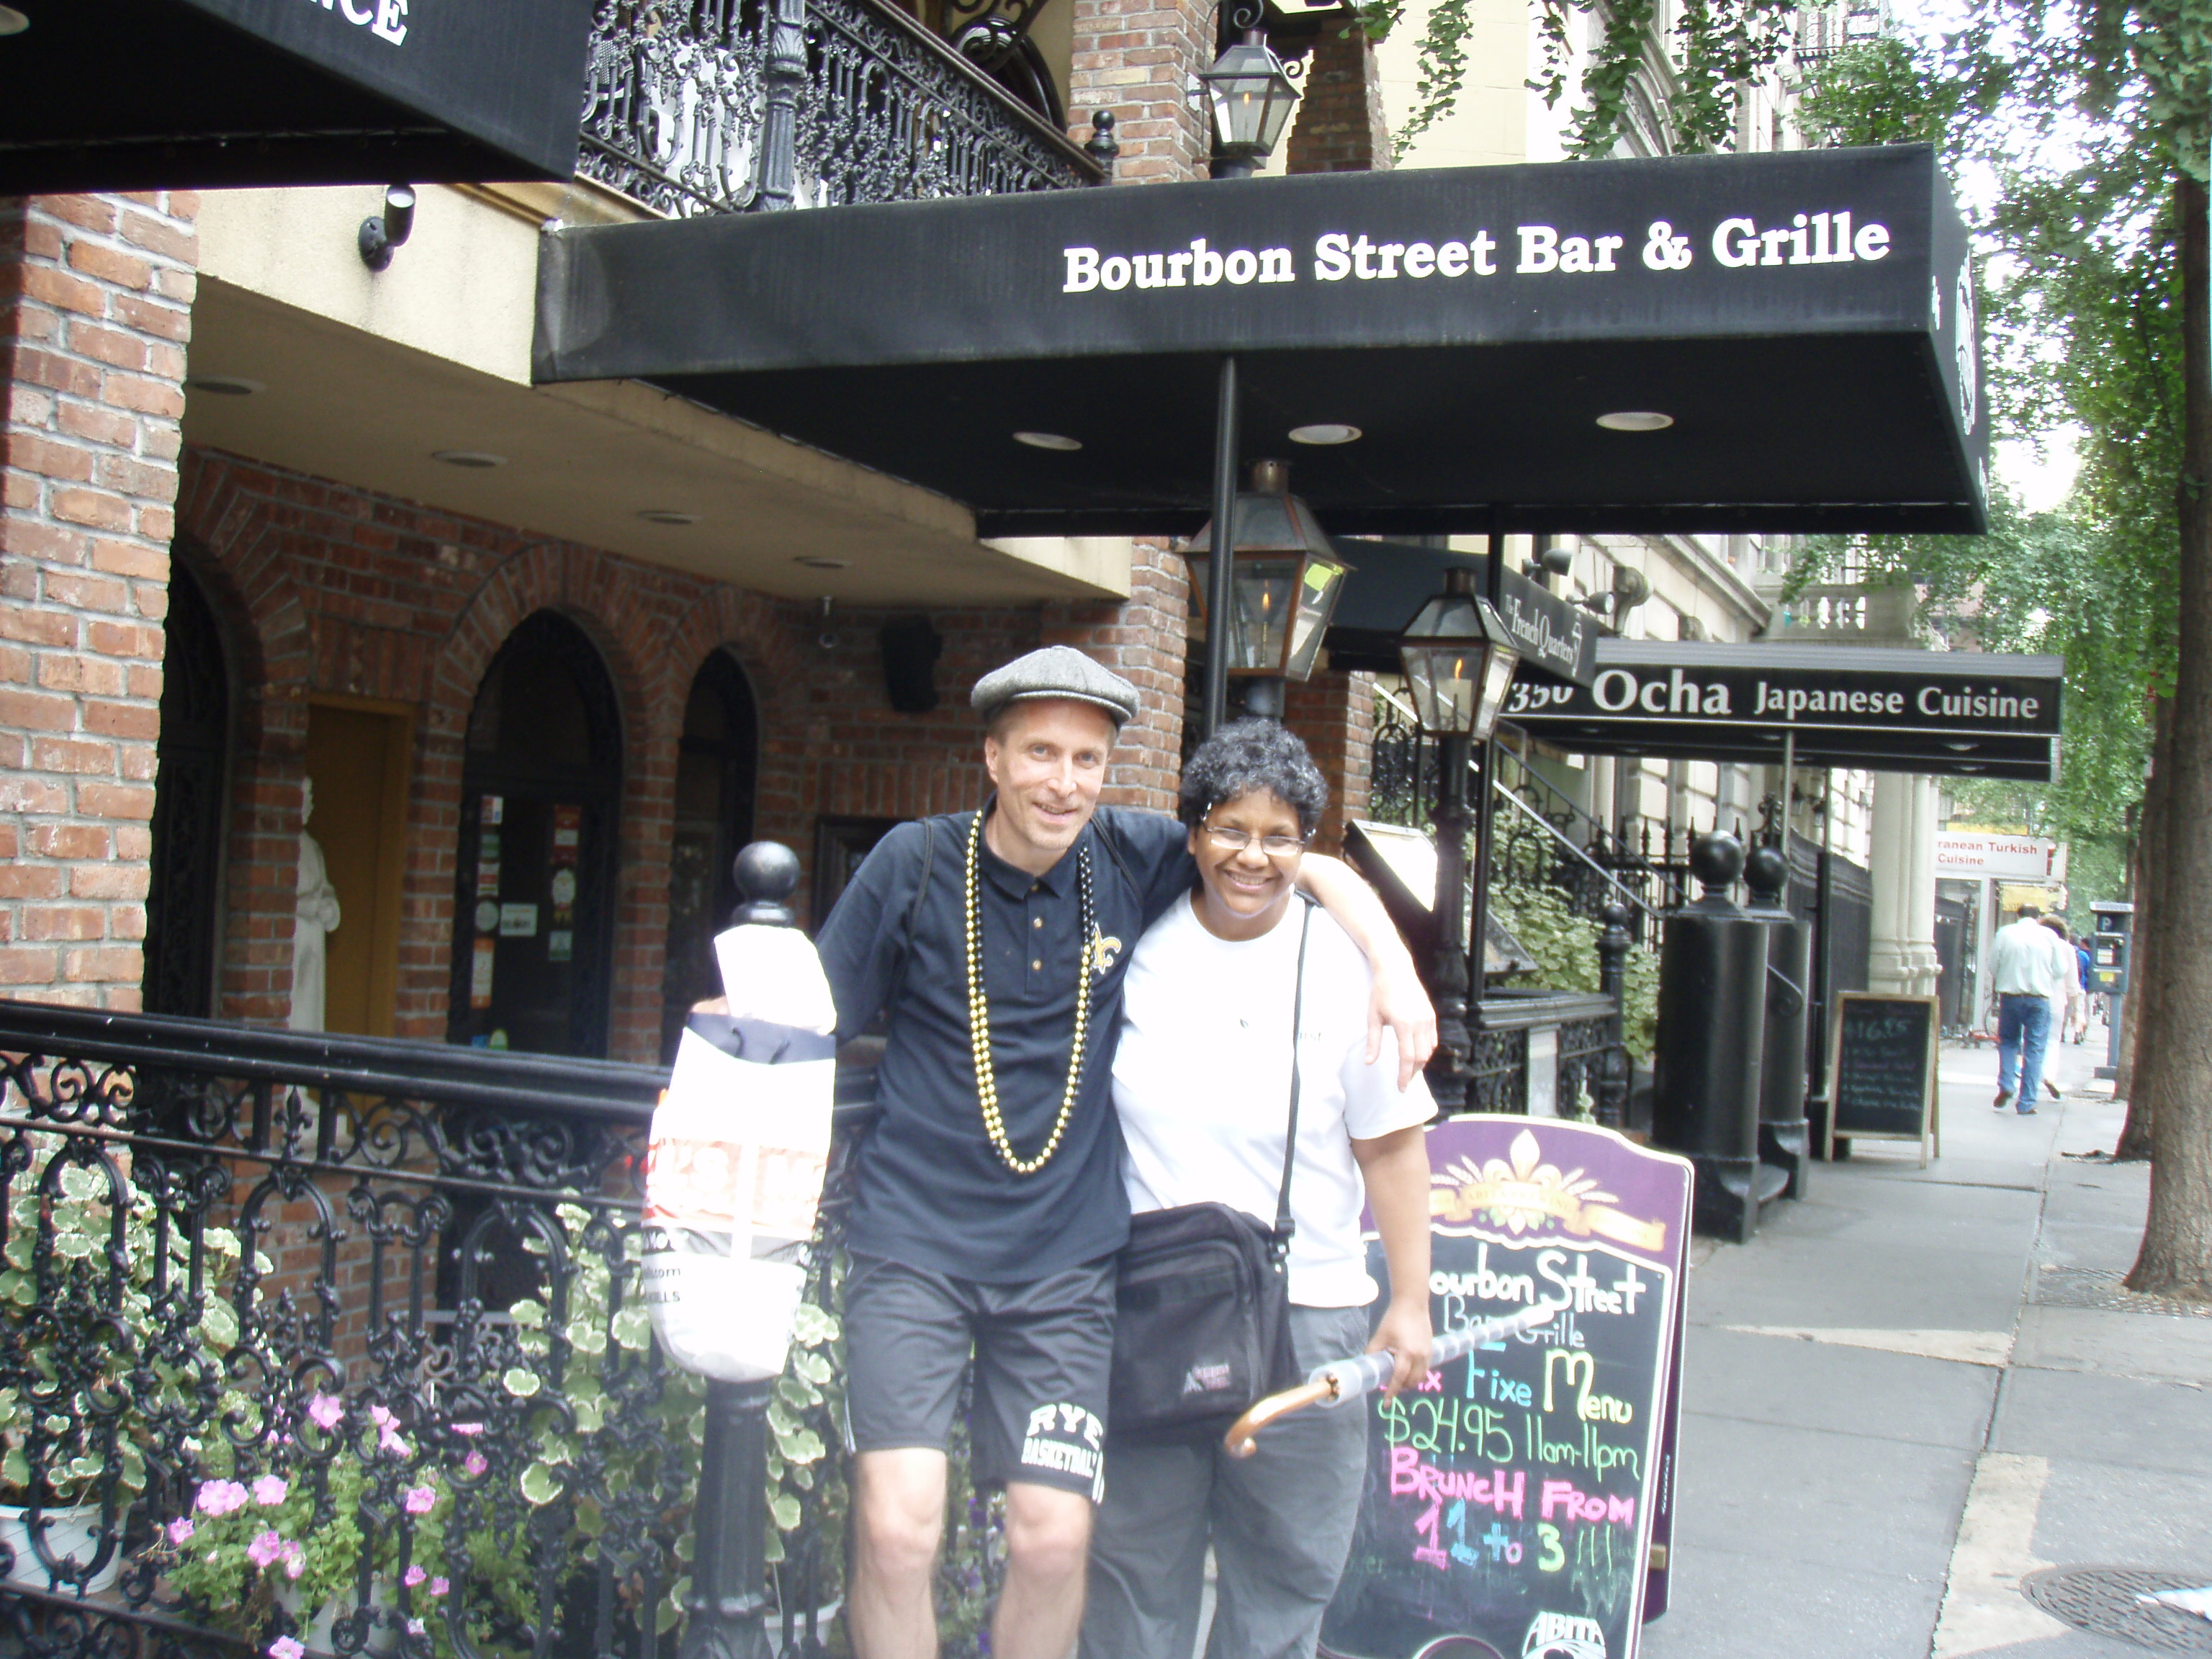 The scene: Bourbon Street Bar & Grille in midtown, a/k/a NYC's New Orleans embassy.